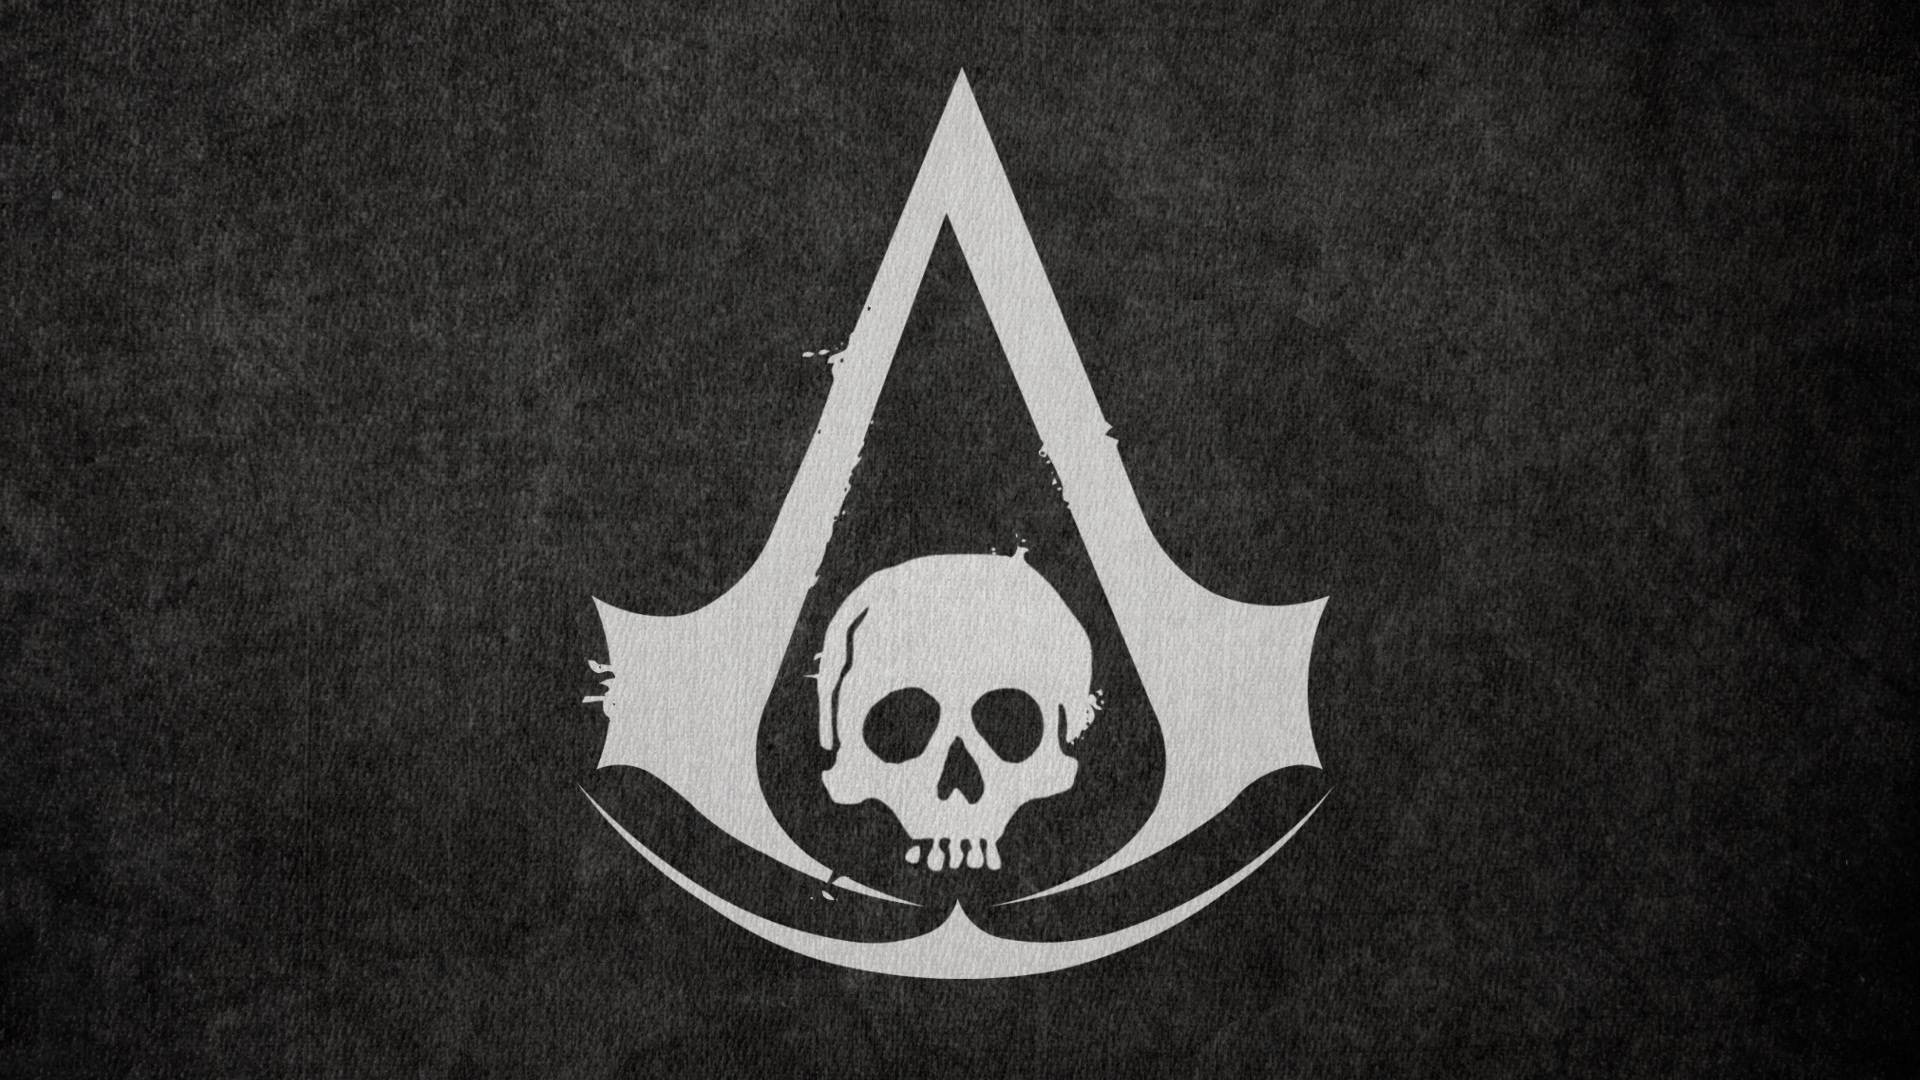 assassins creed logo wallpaper (78+ images)